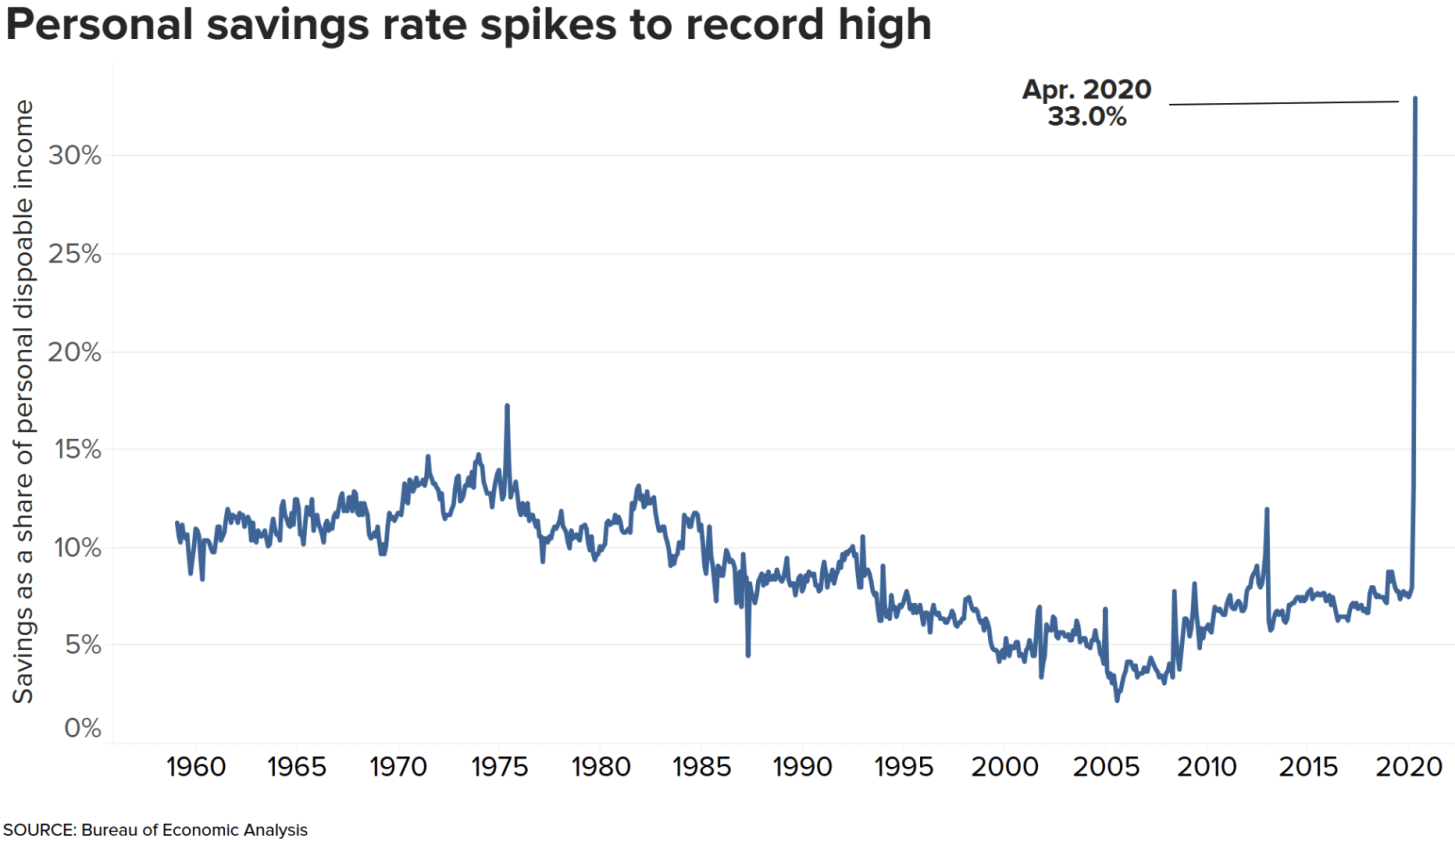 The US Personal Saving Rate Is At An All-Time High